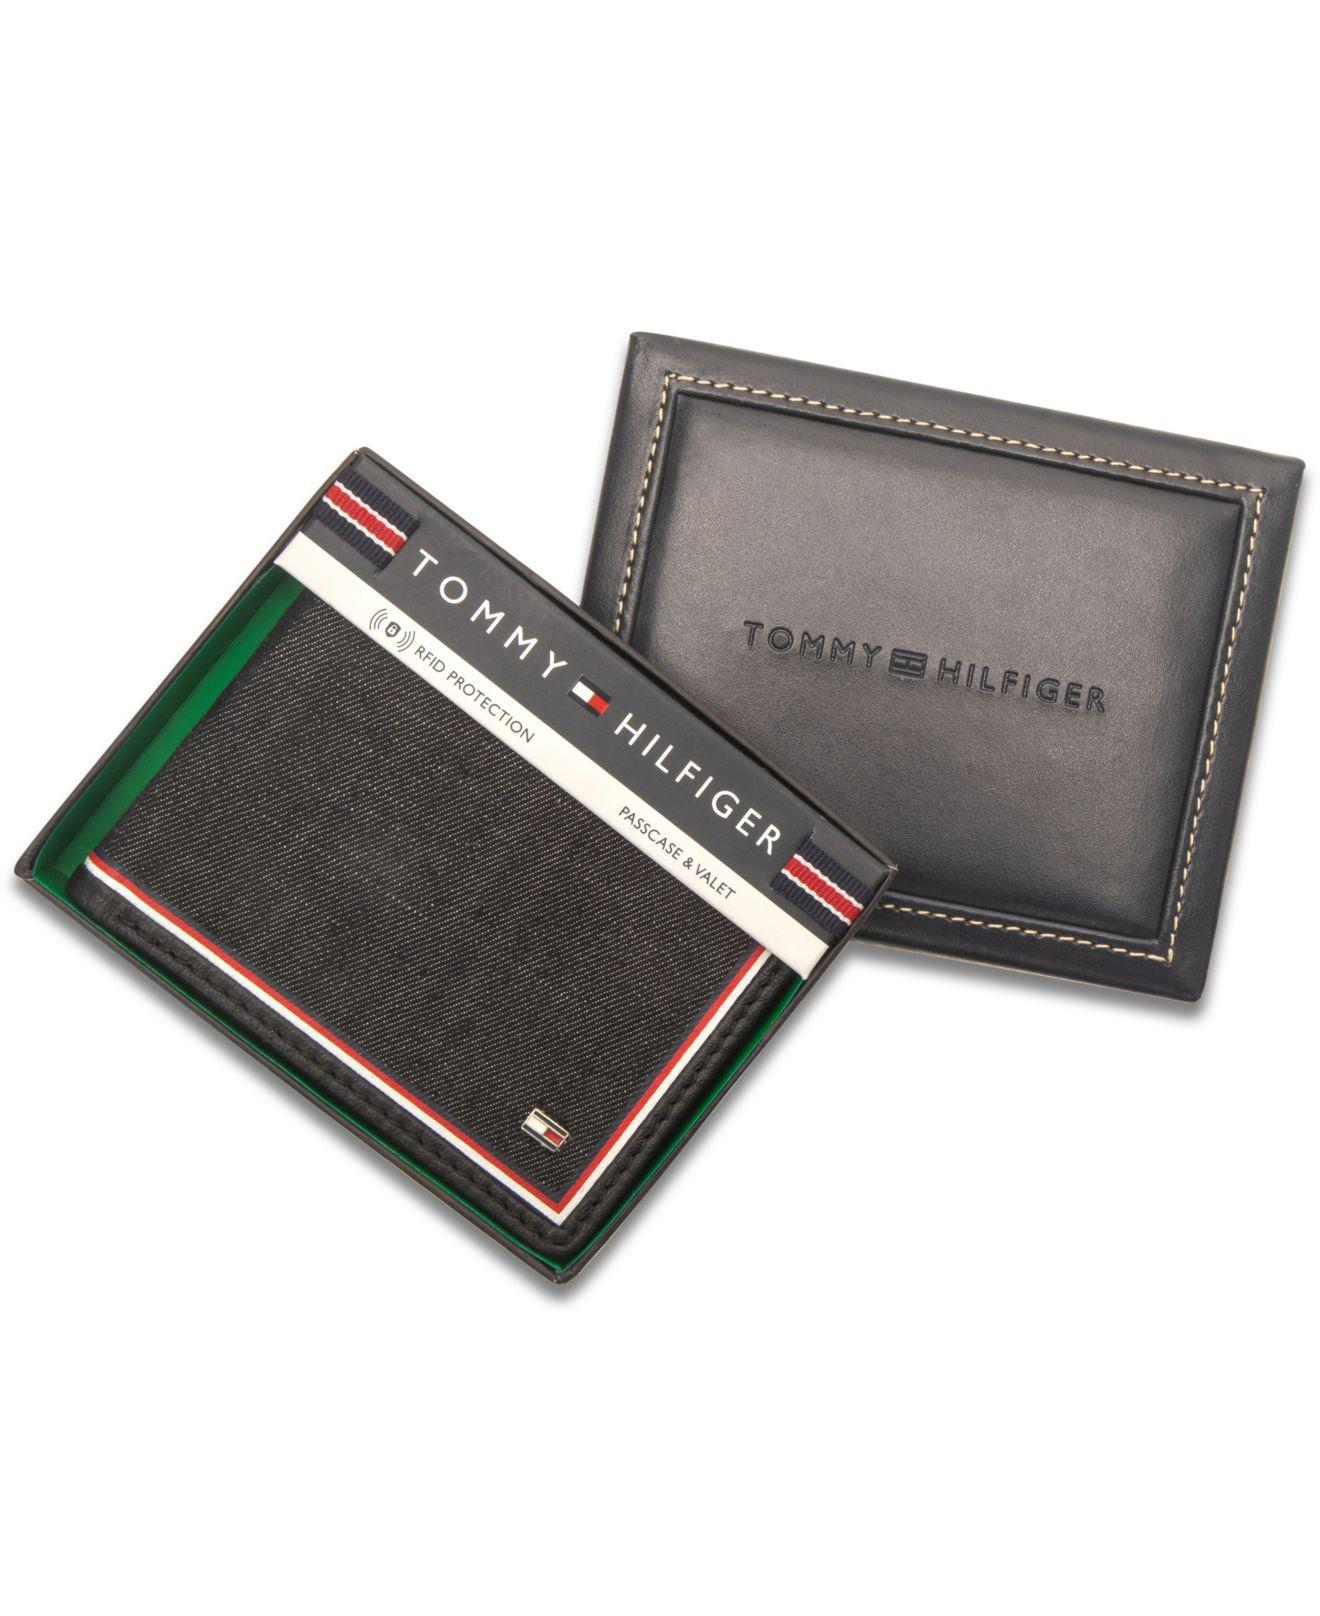 939f520f94 Tommy Hilfiger - Black Omarion Passcase Wallet for Men - Lyst. View  fullscreen